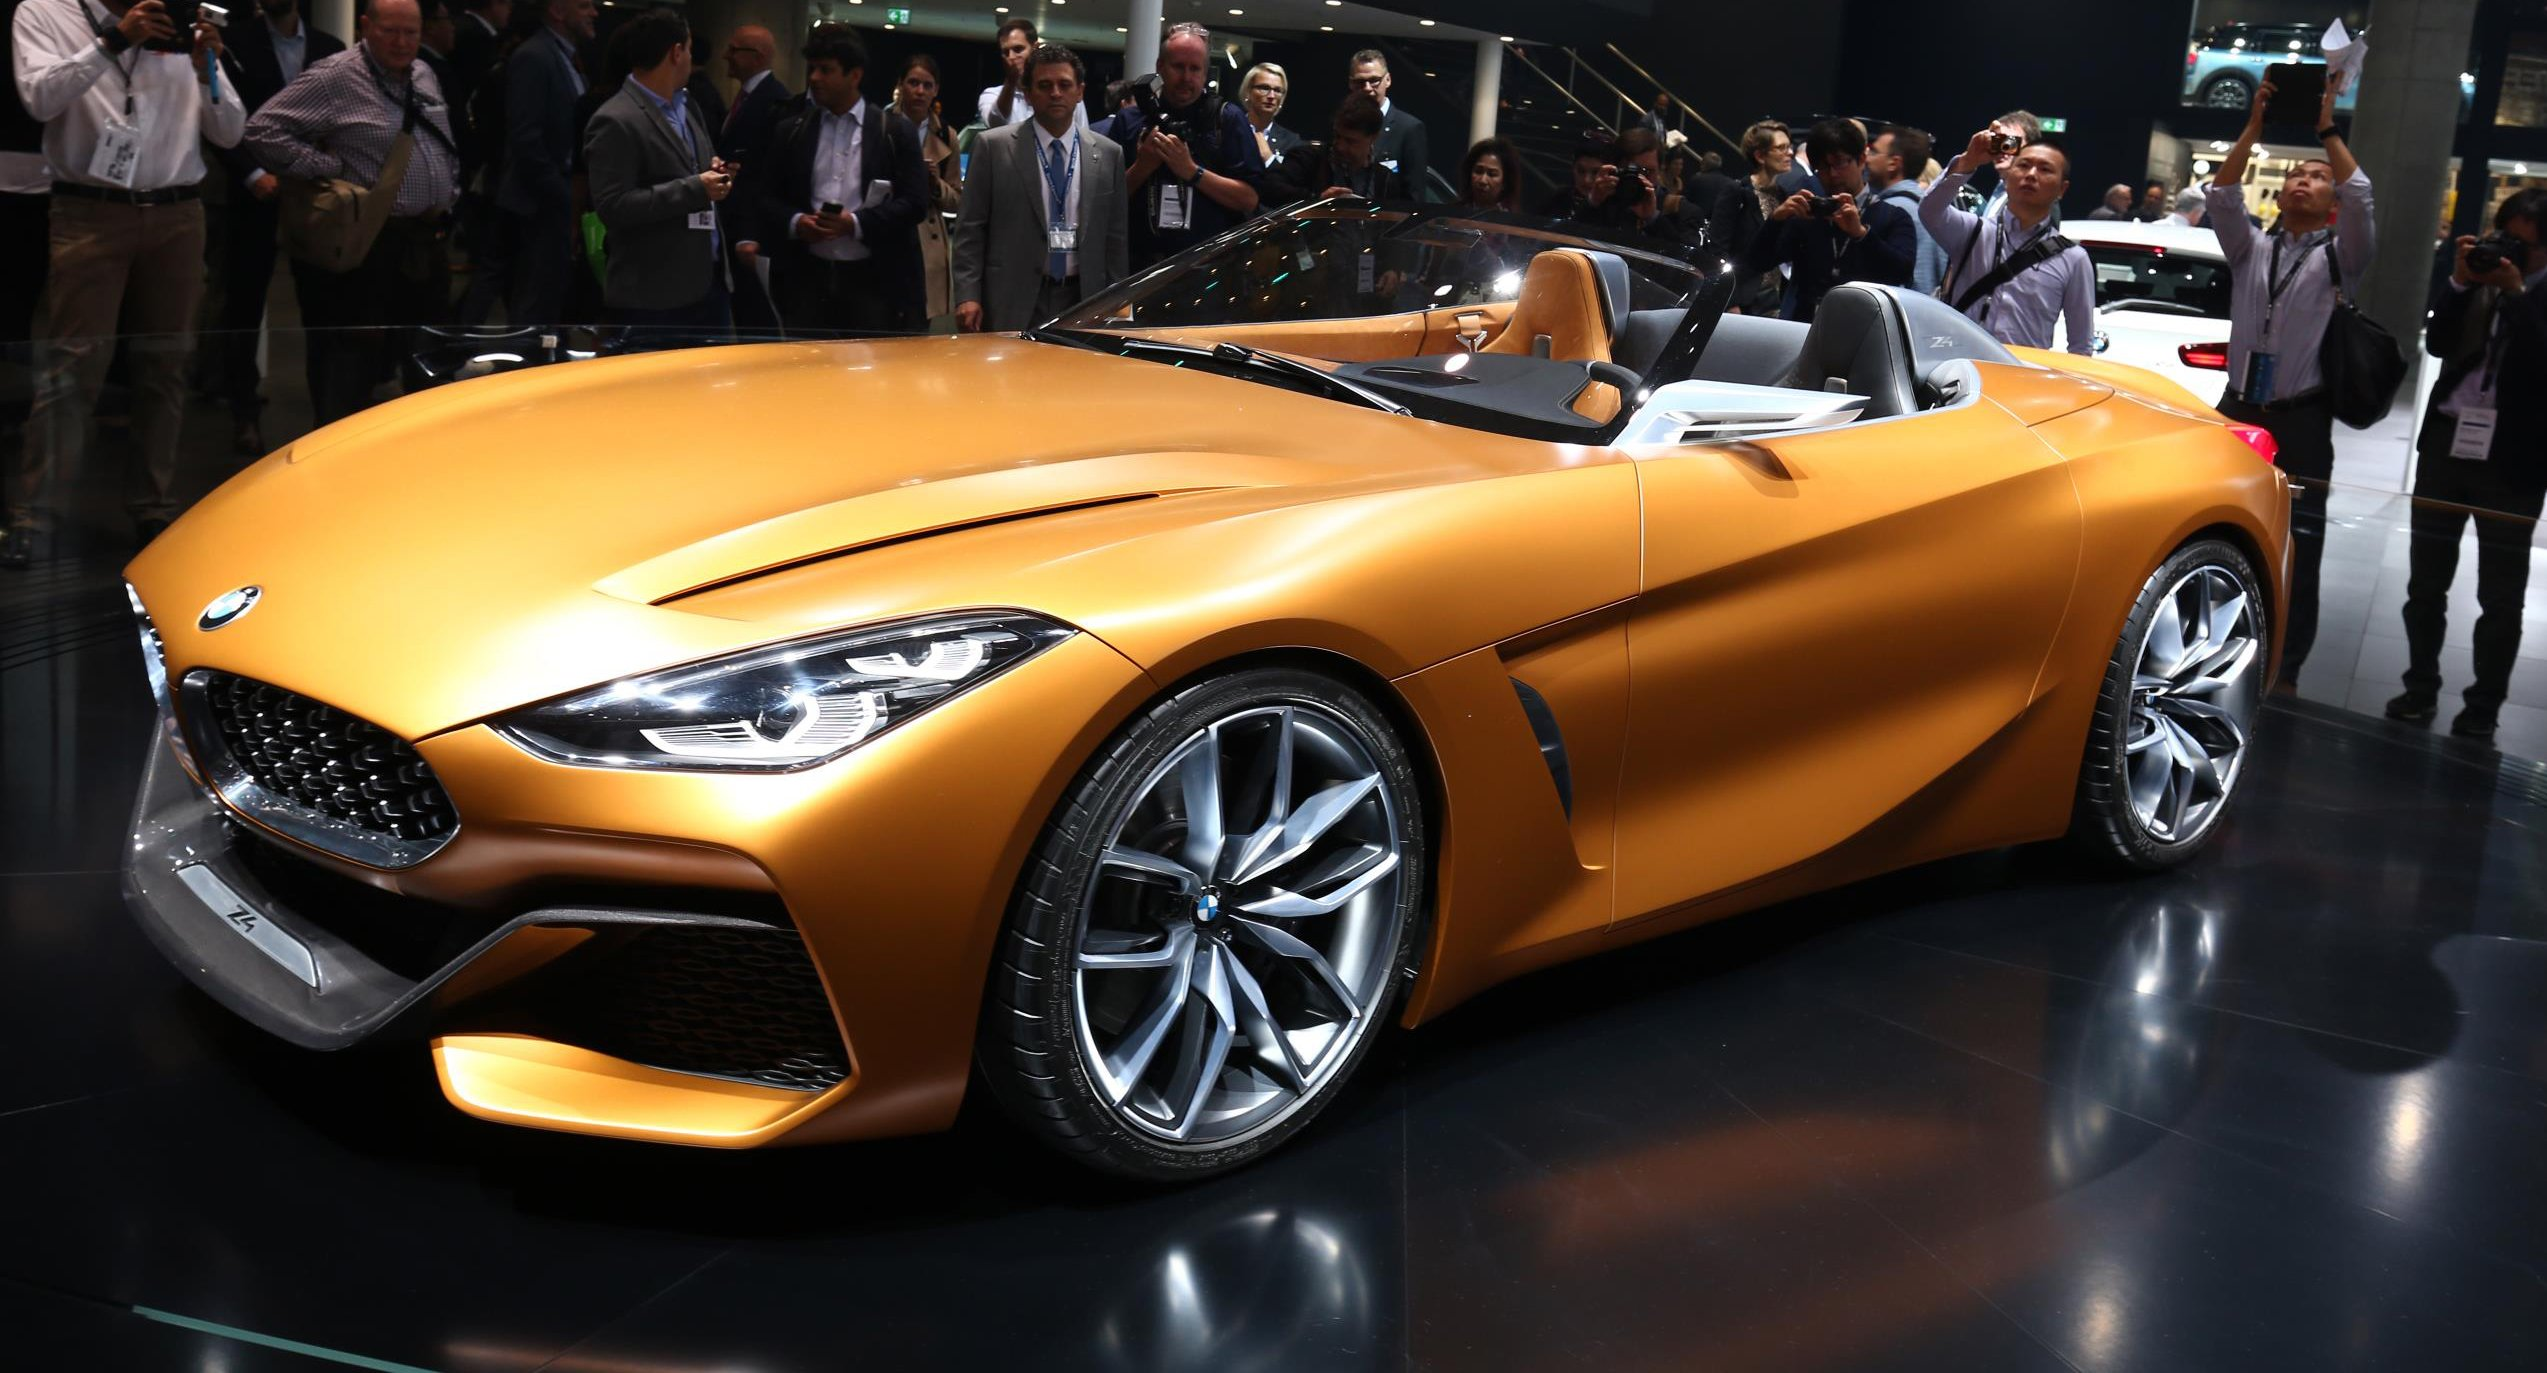 2019 Bmw Z4 Won T Drive Anything Like The Toyota Supra Bmw Boss Says Photos